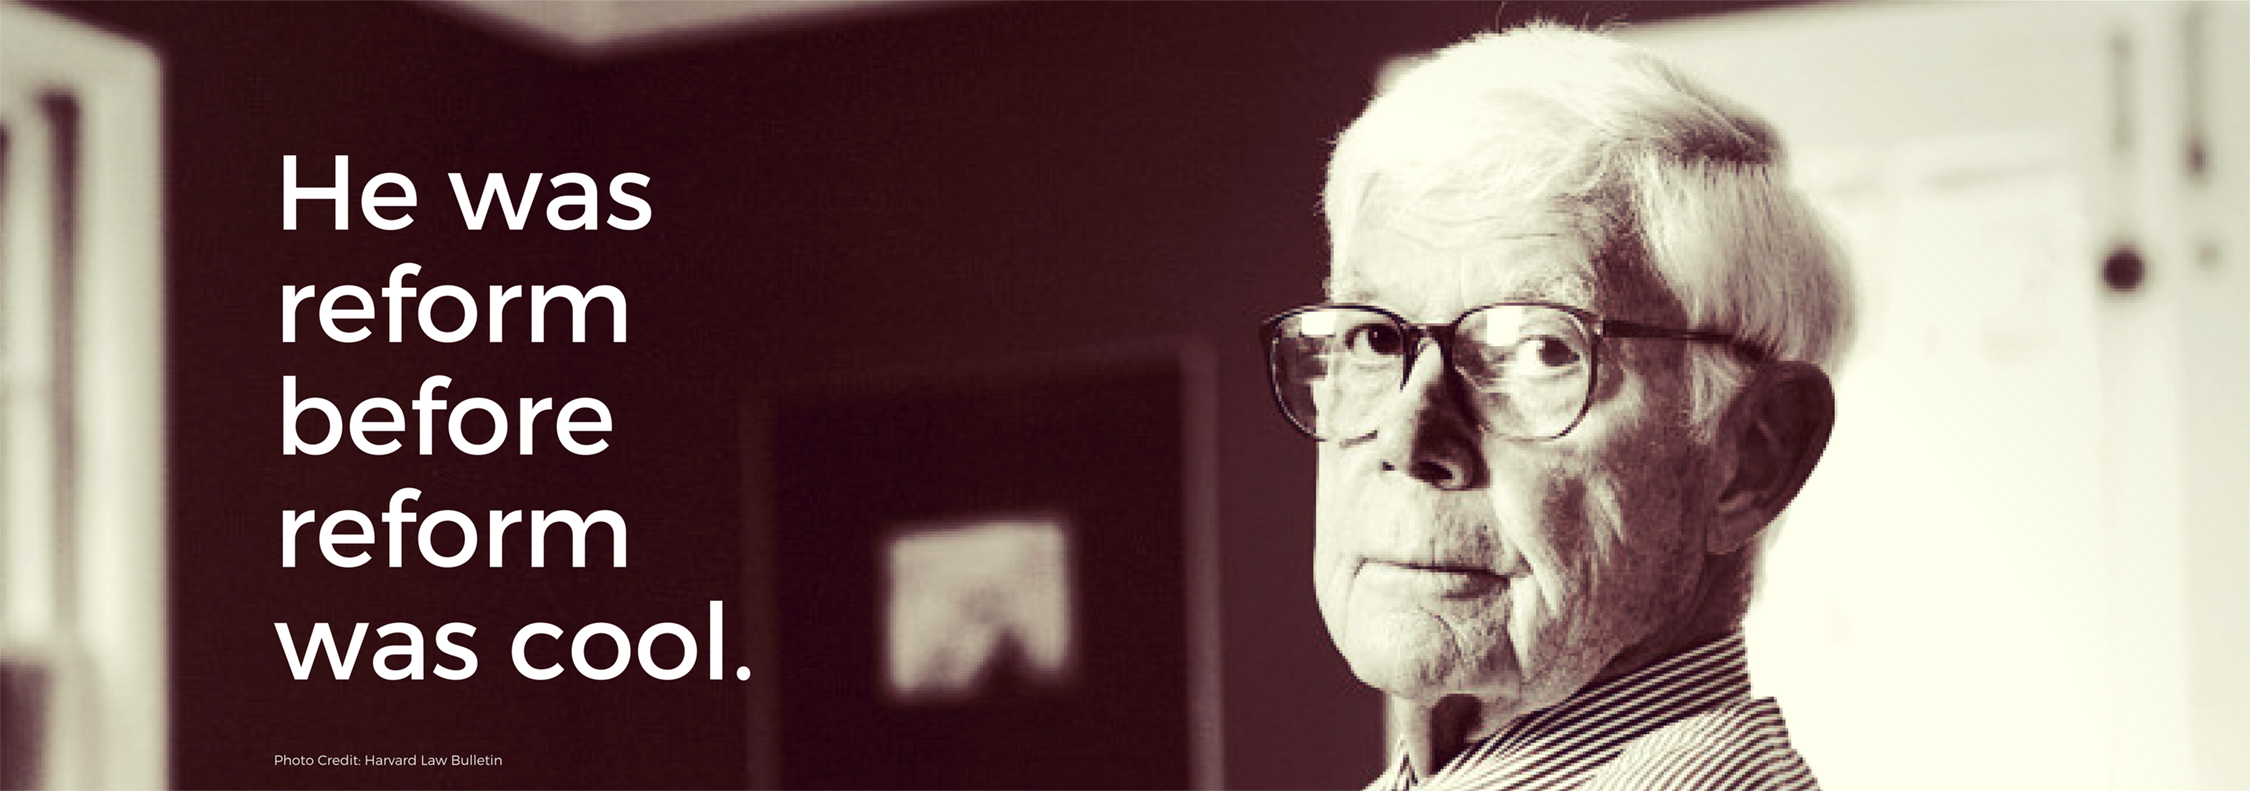 Celebrate John B. Anderson's 95th Birthday!